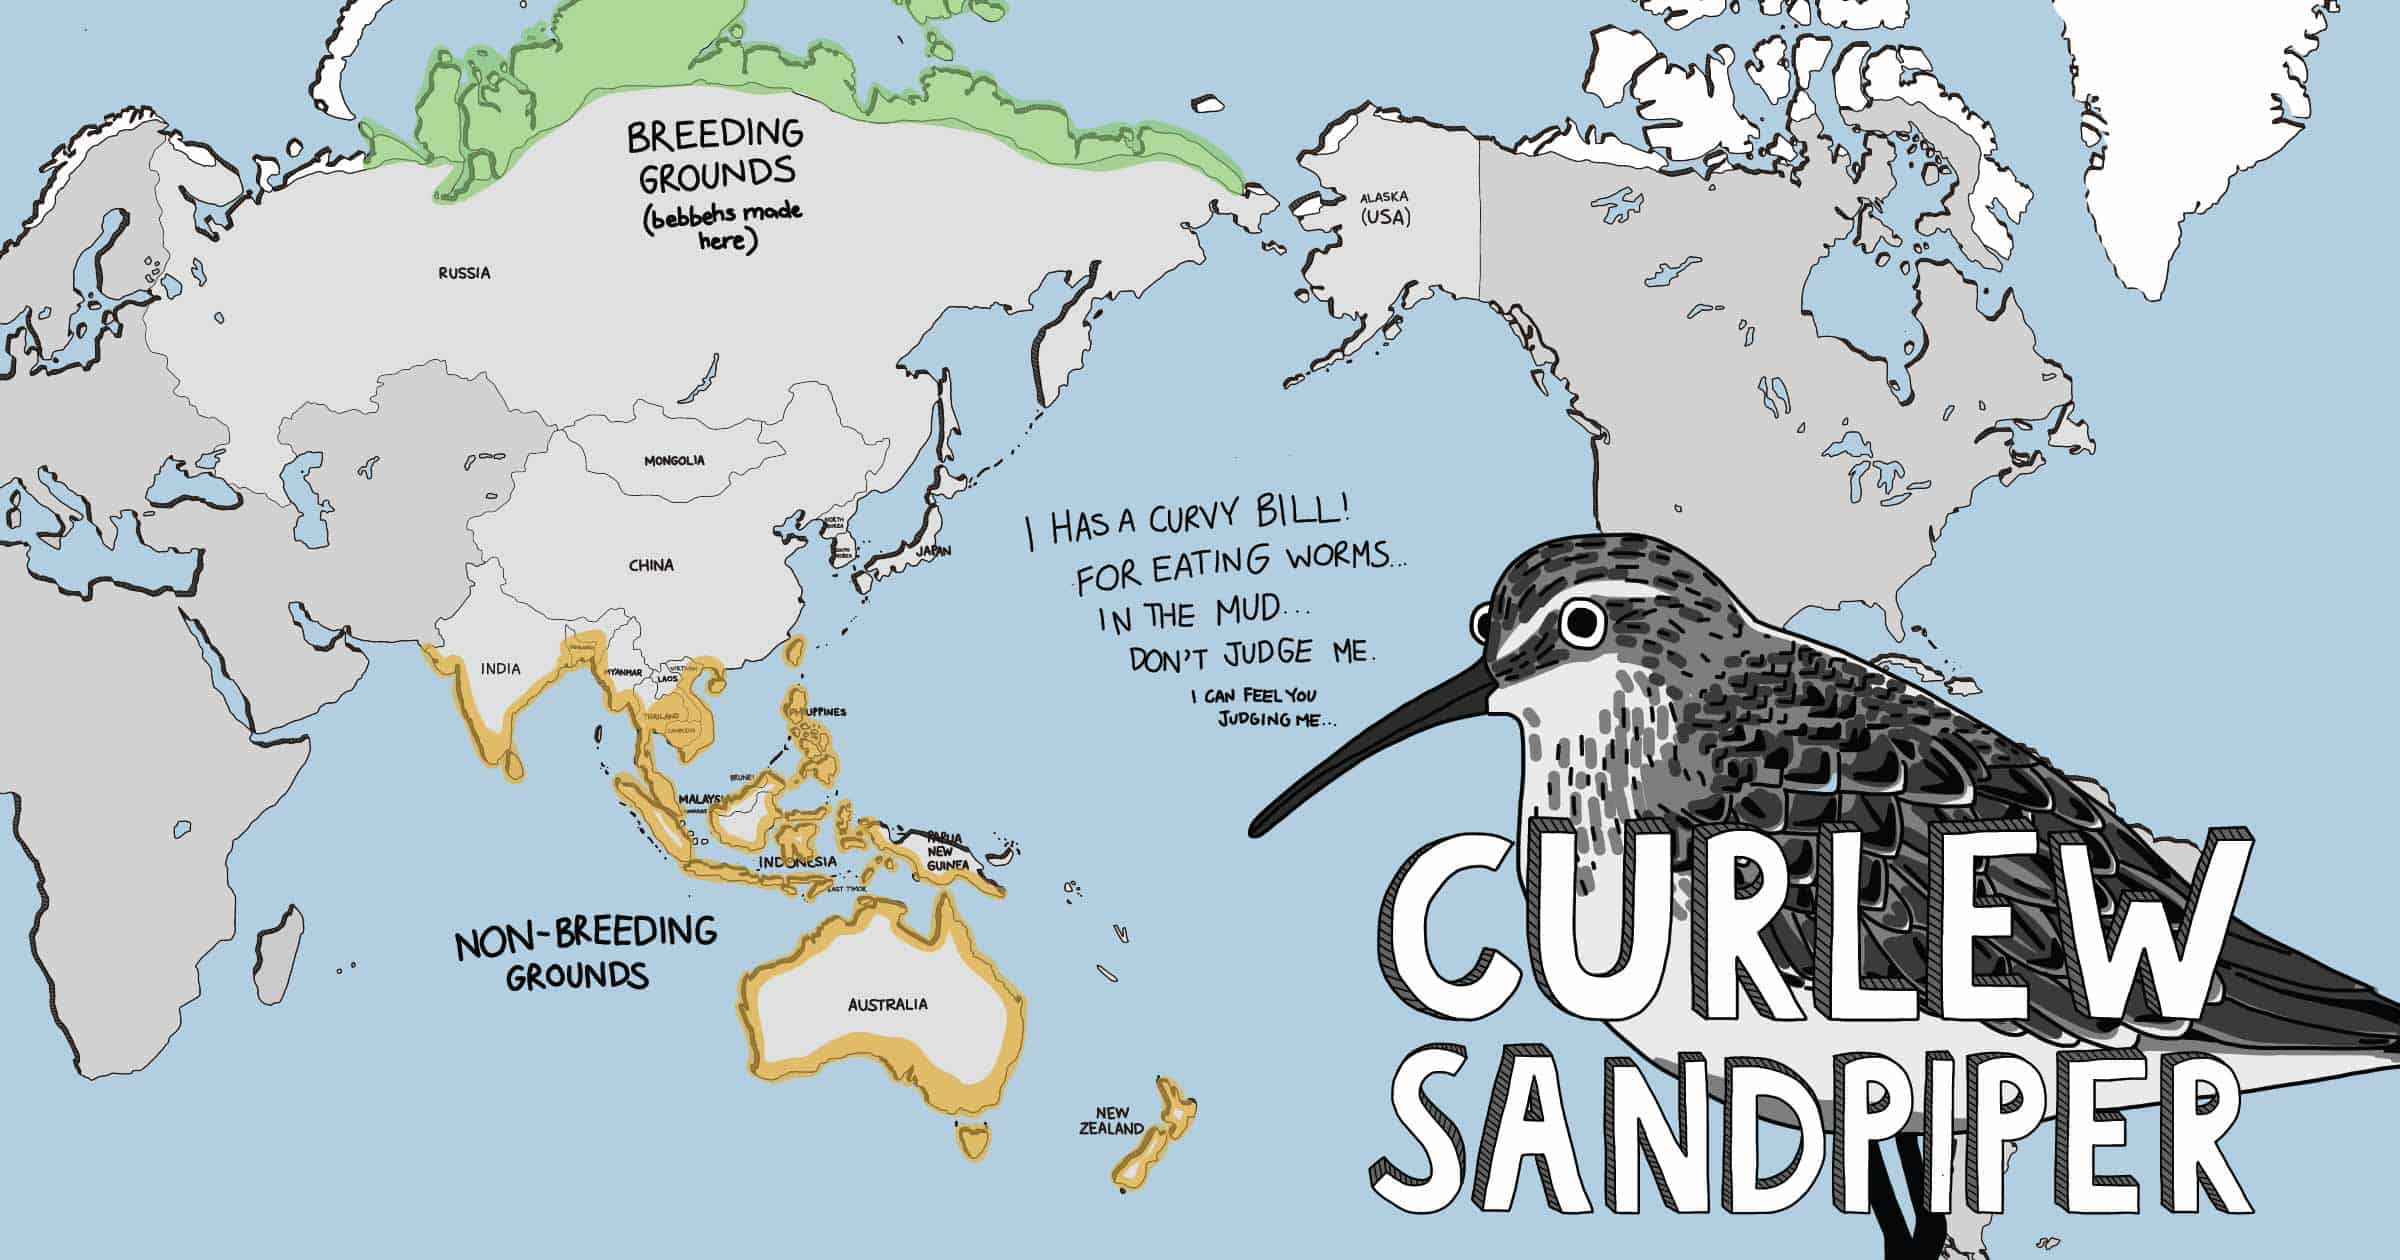 Cartoon world map showing distribution of the Curlew Sandpiper